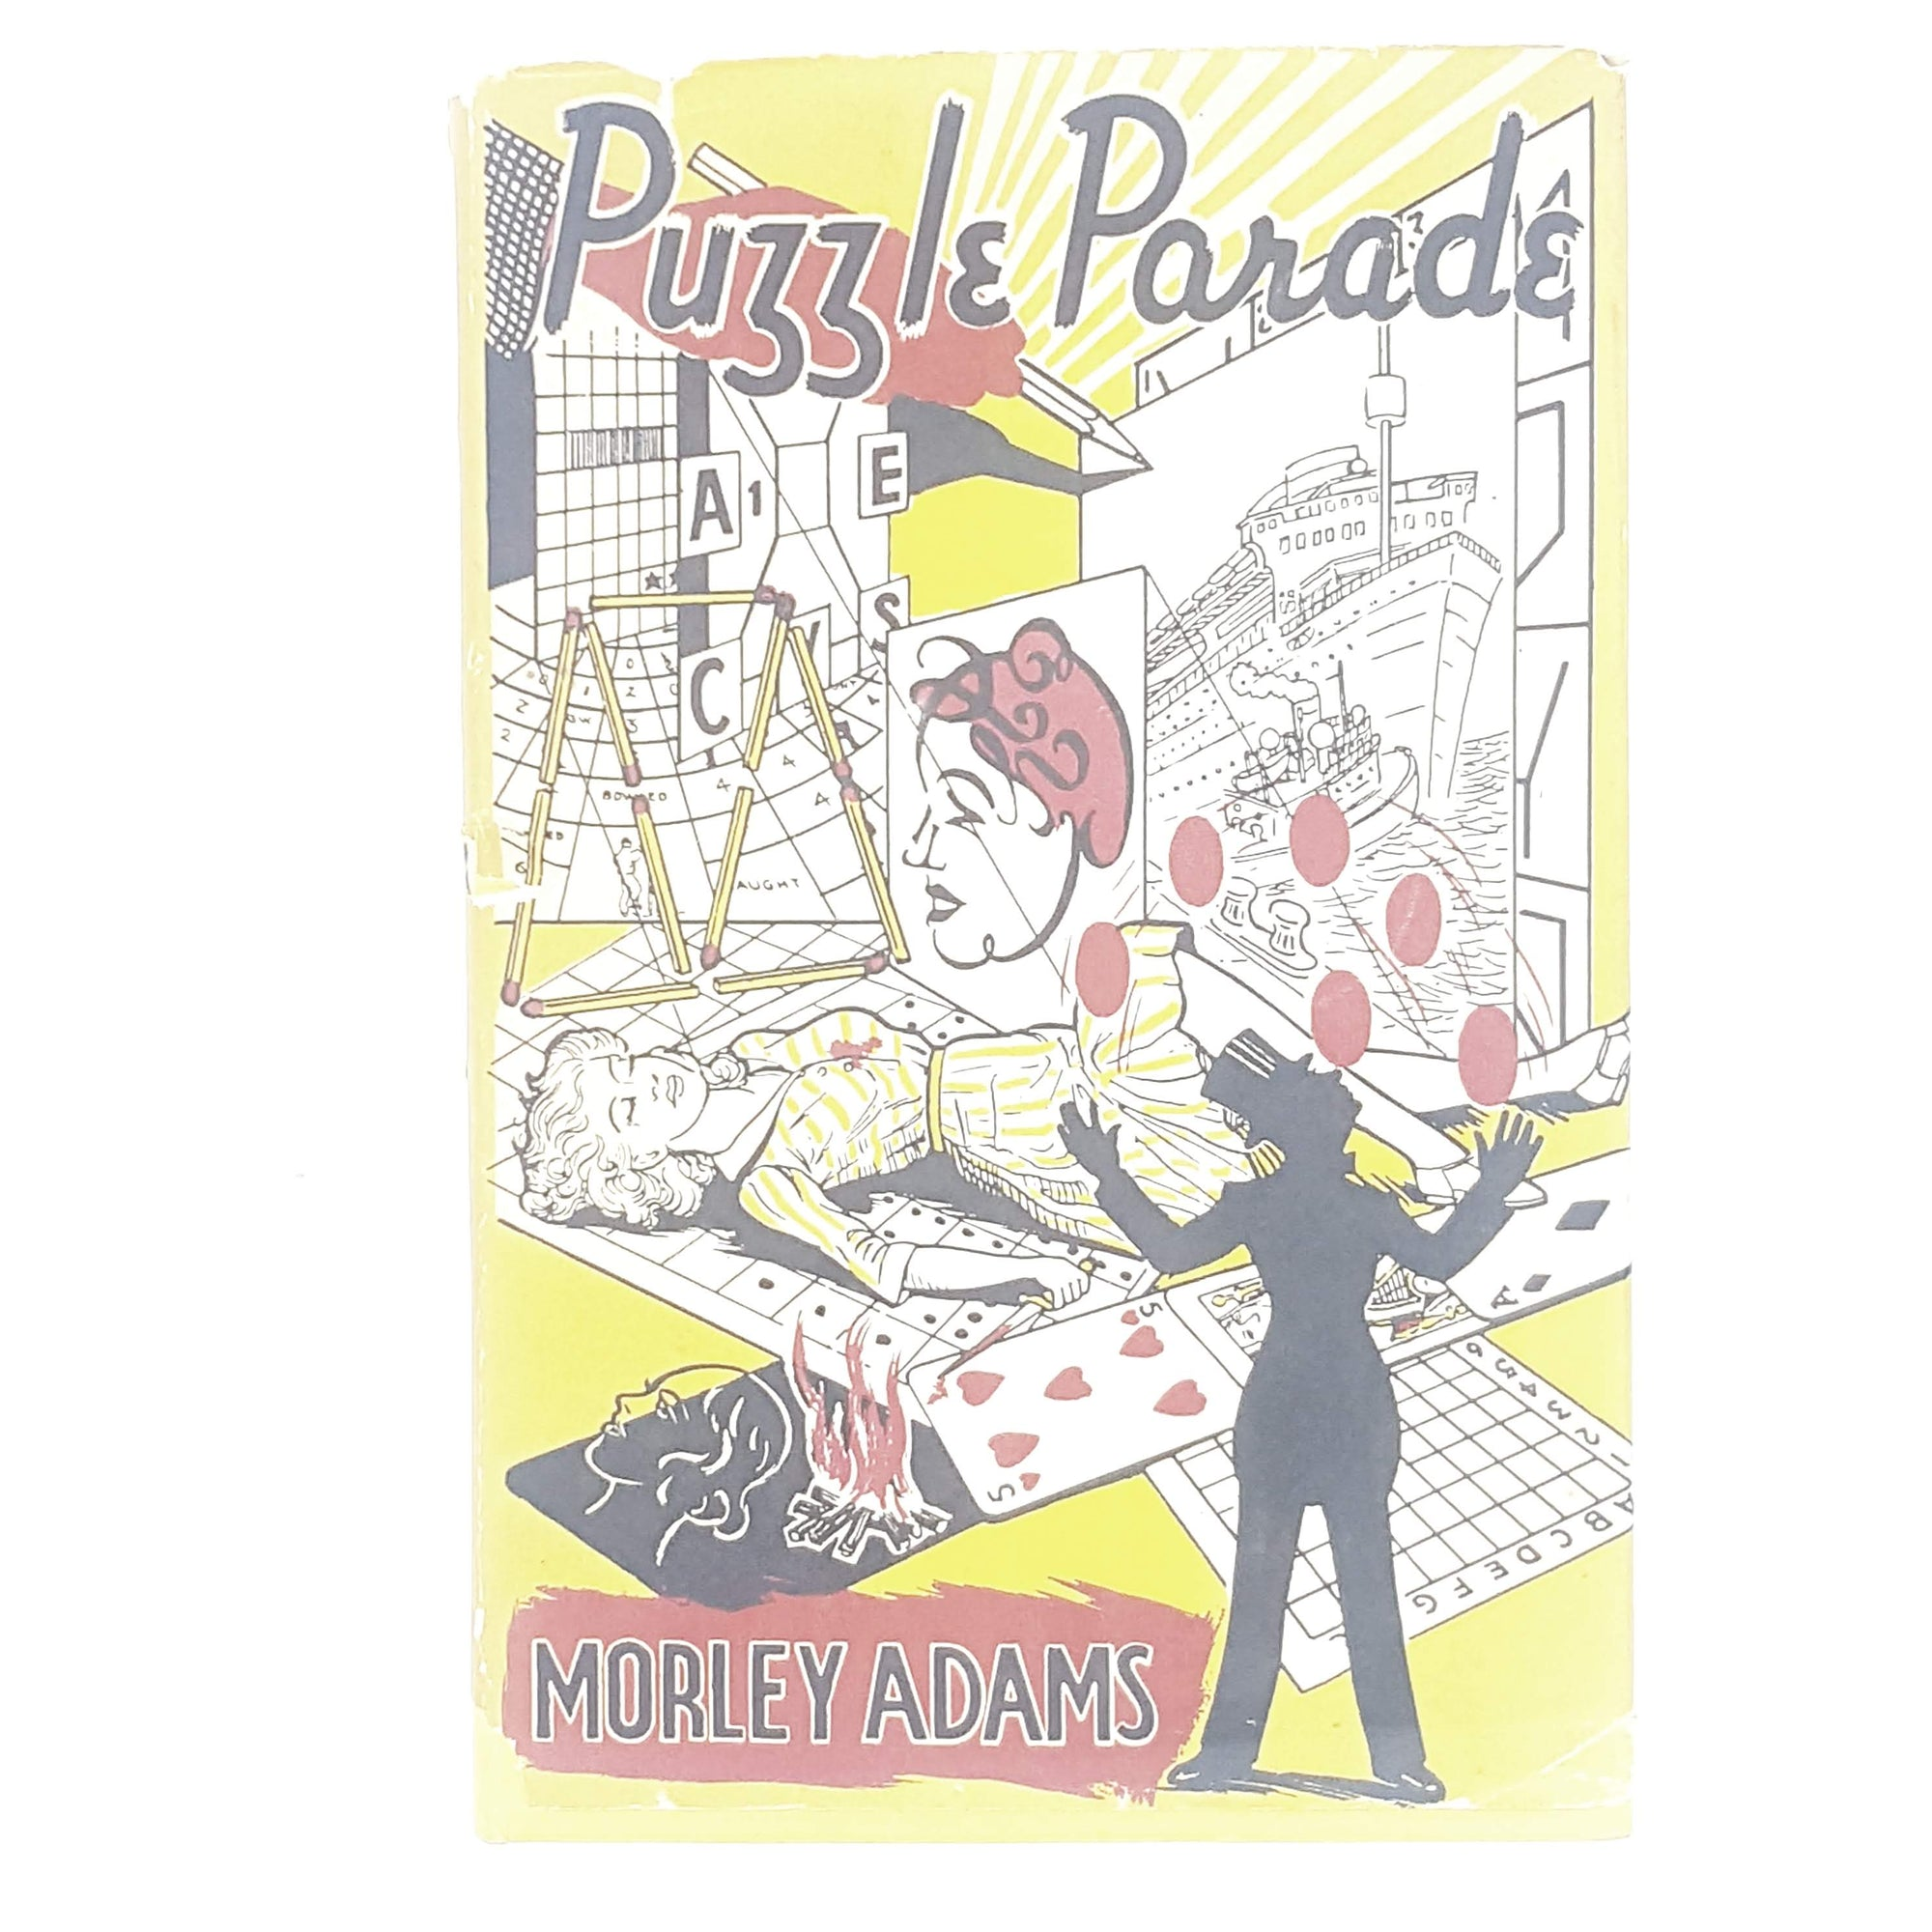 Puzzle Parade by Morley Adams 1948